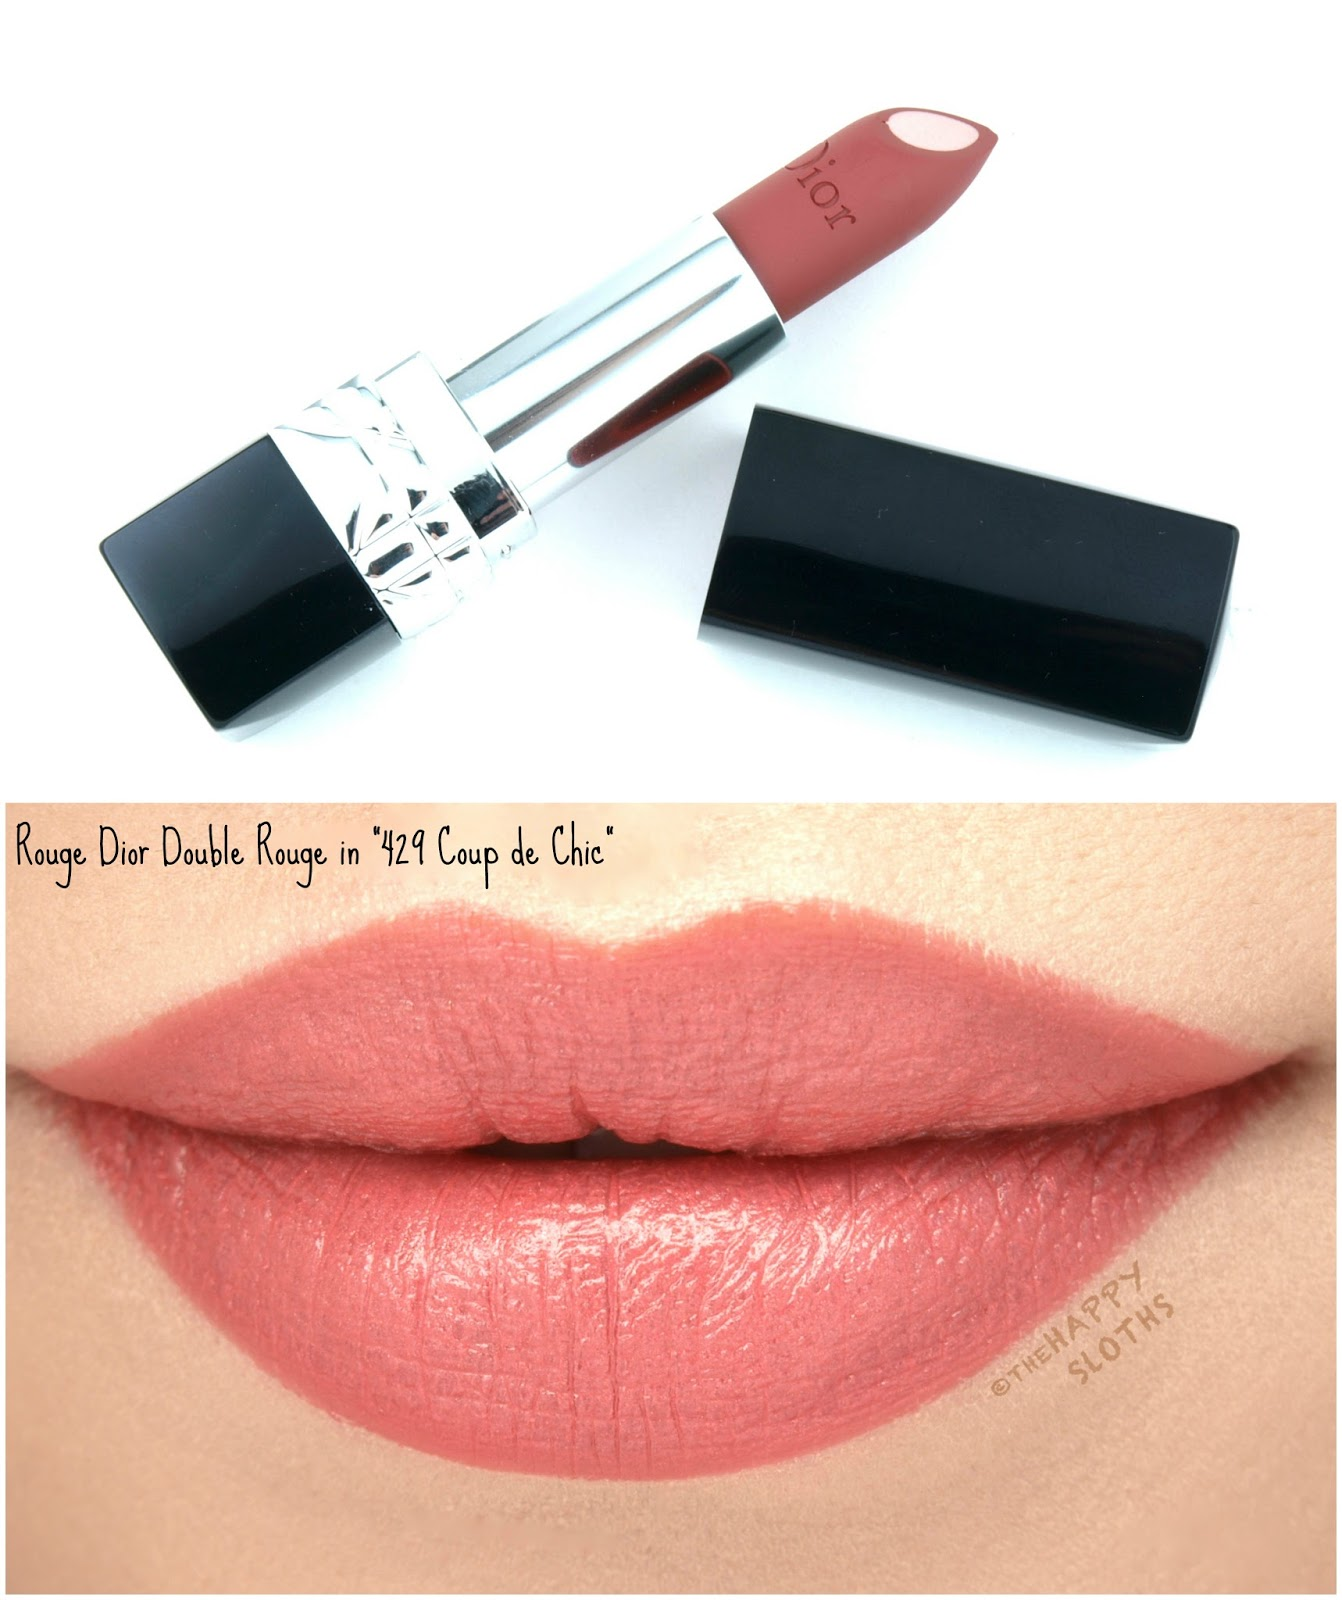 "Dior Rouge Dior Double Rouge Lipstick in ""429 Coup de Chic"": Review and Swatches"